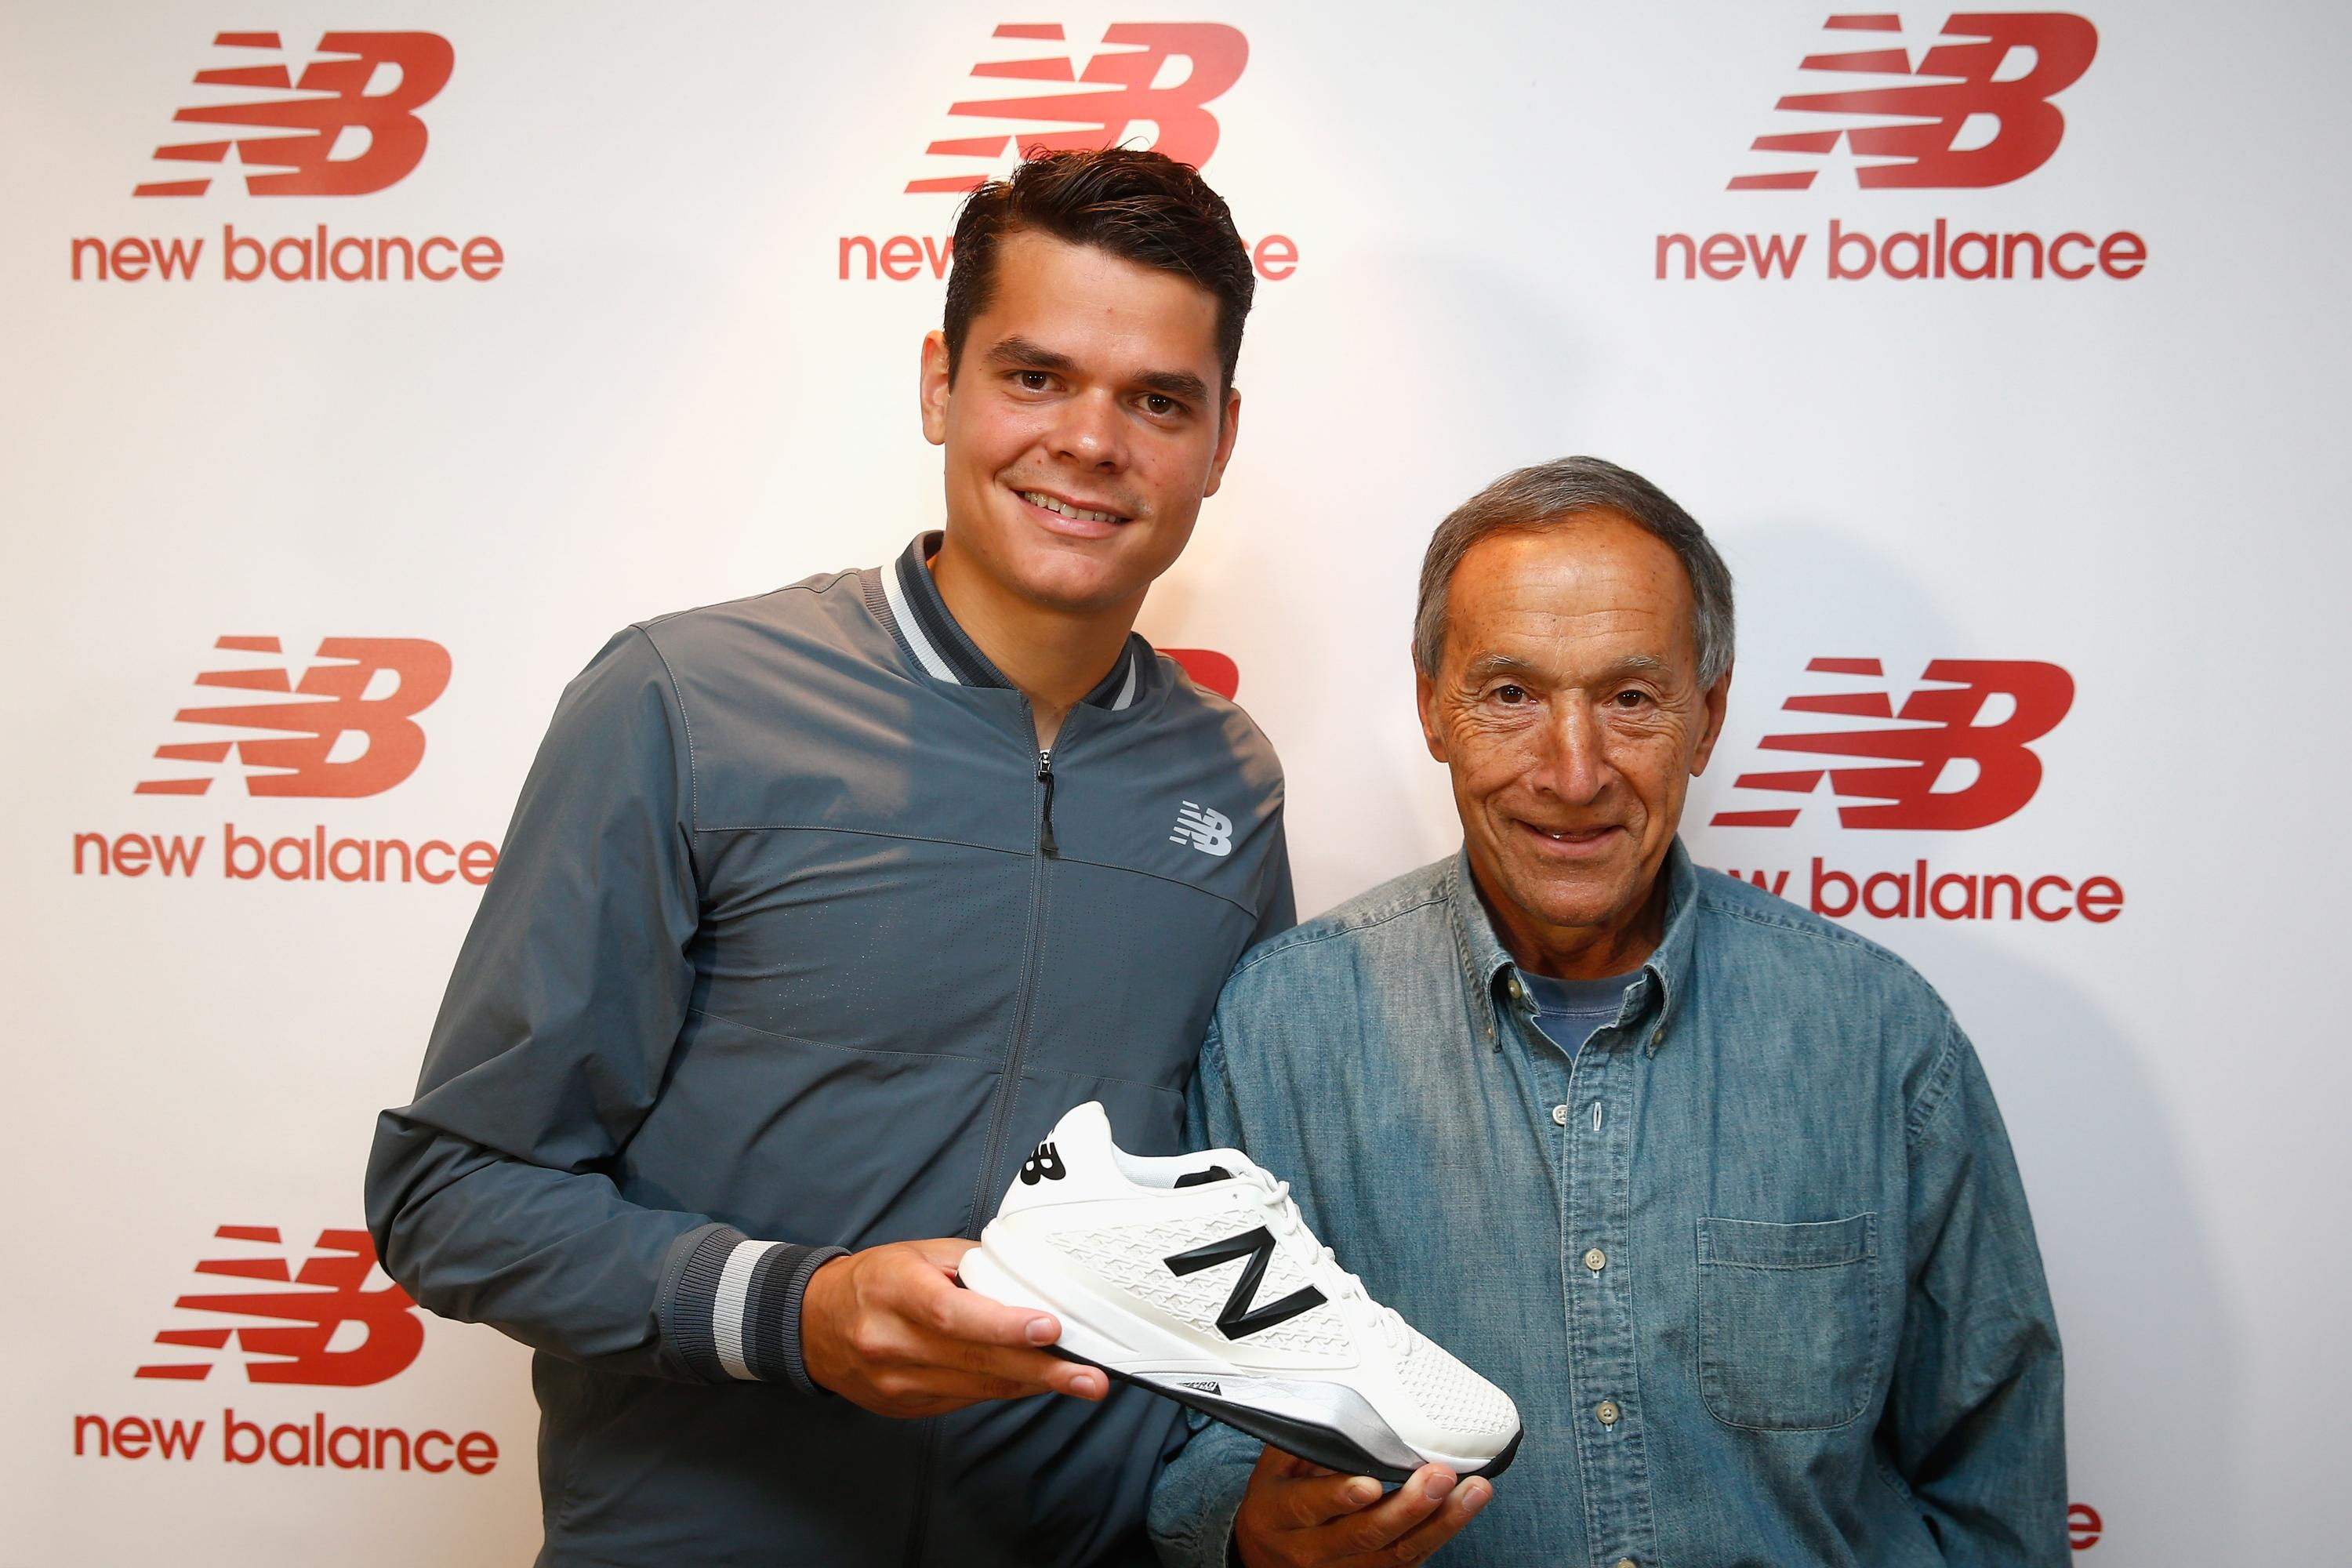 Captivating Canadian Tennis Star Milos Raonic Signs Lifetime Deal With Clothing Sponsor  New Balance With Clothing Sponsorship